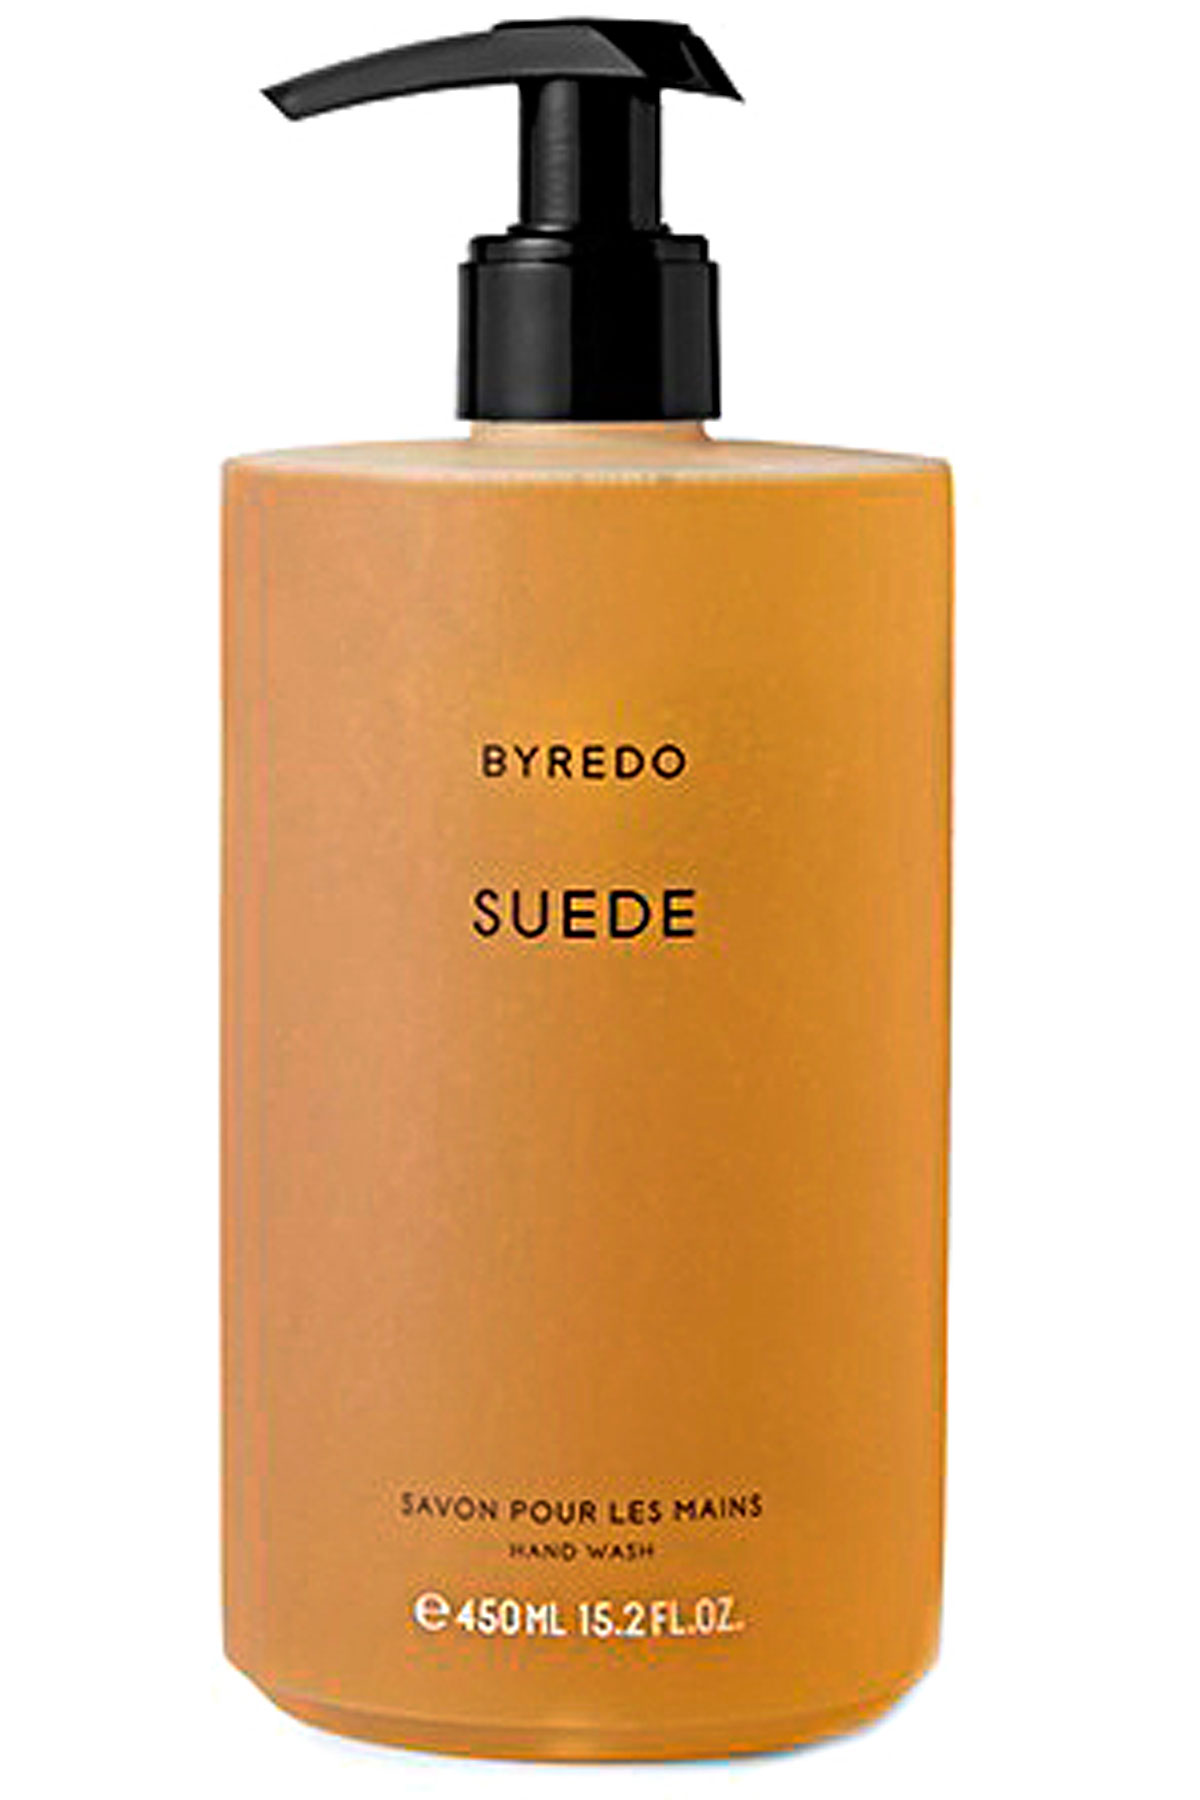 Byredo Beauty for Women, Suede - Liquid Soap - 450 Ml, 2019, 450 ml